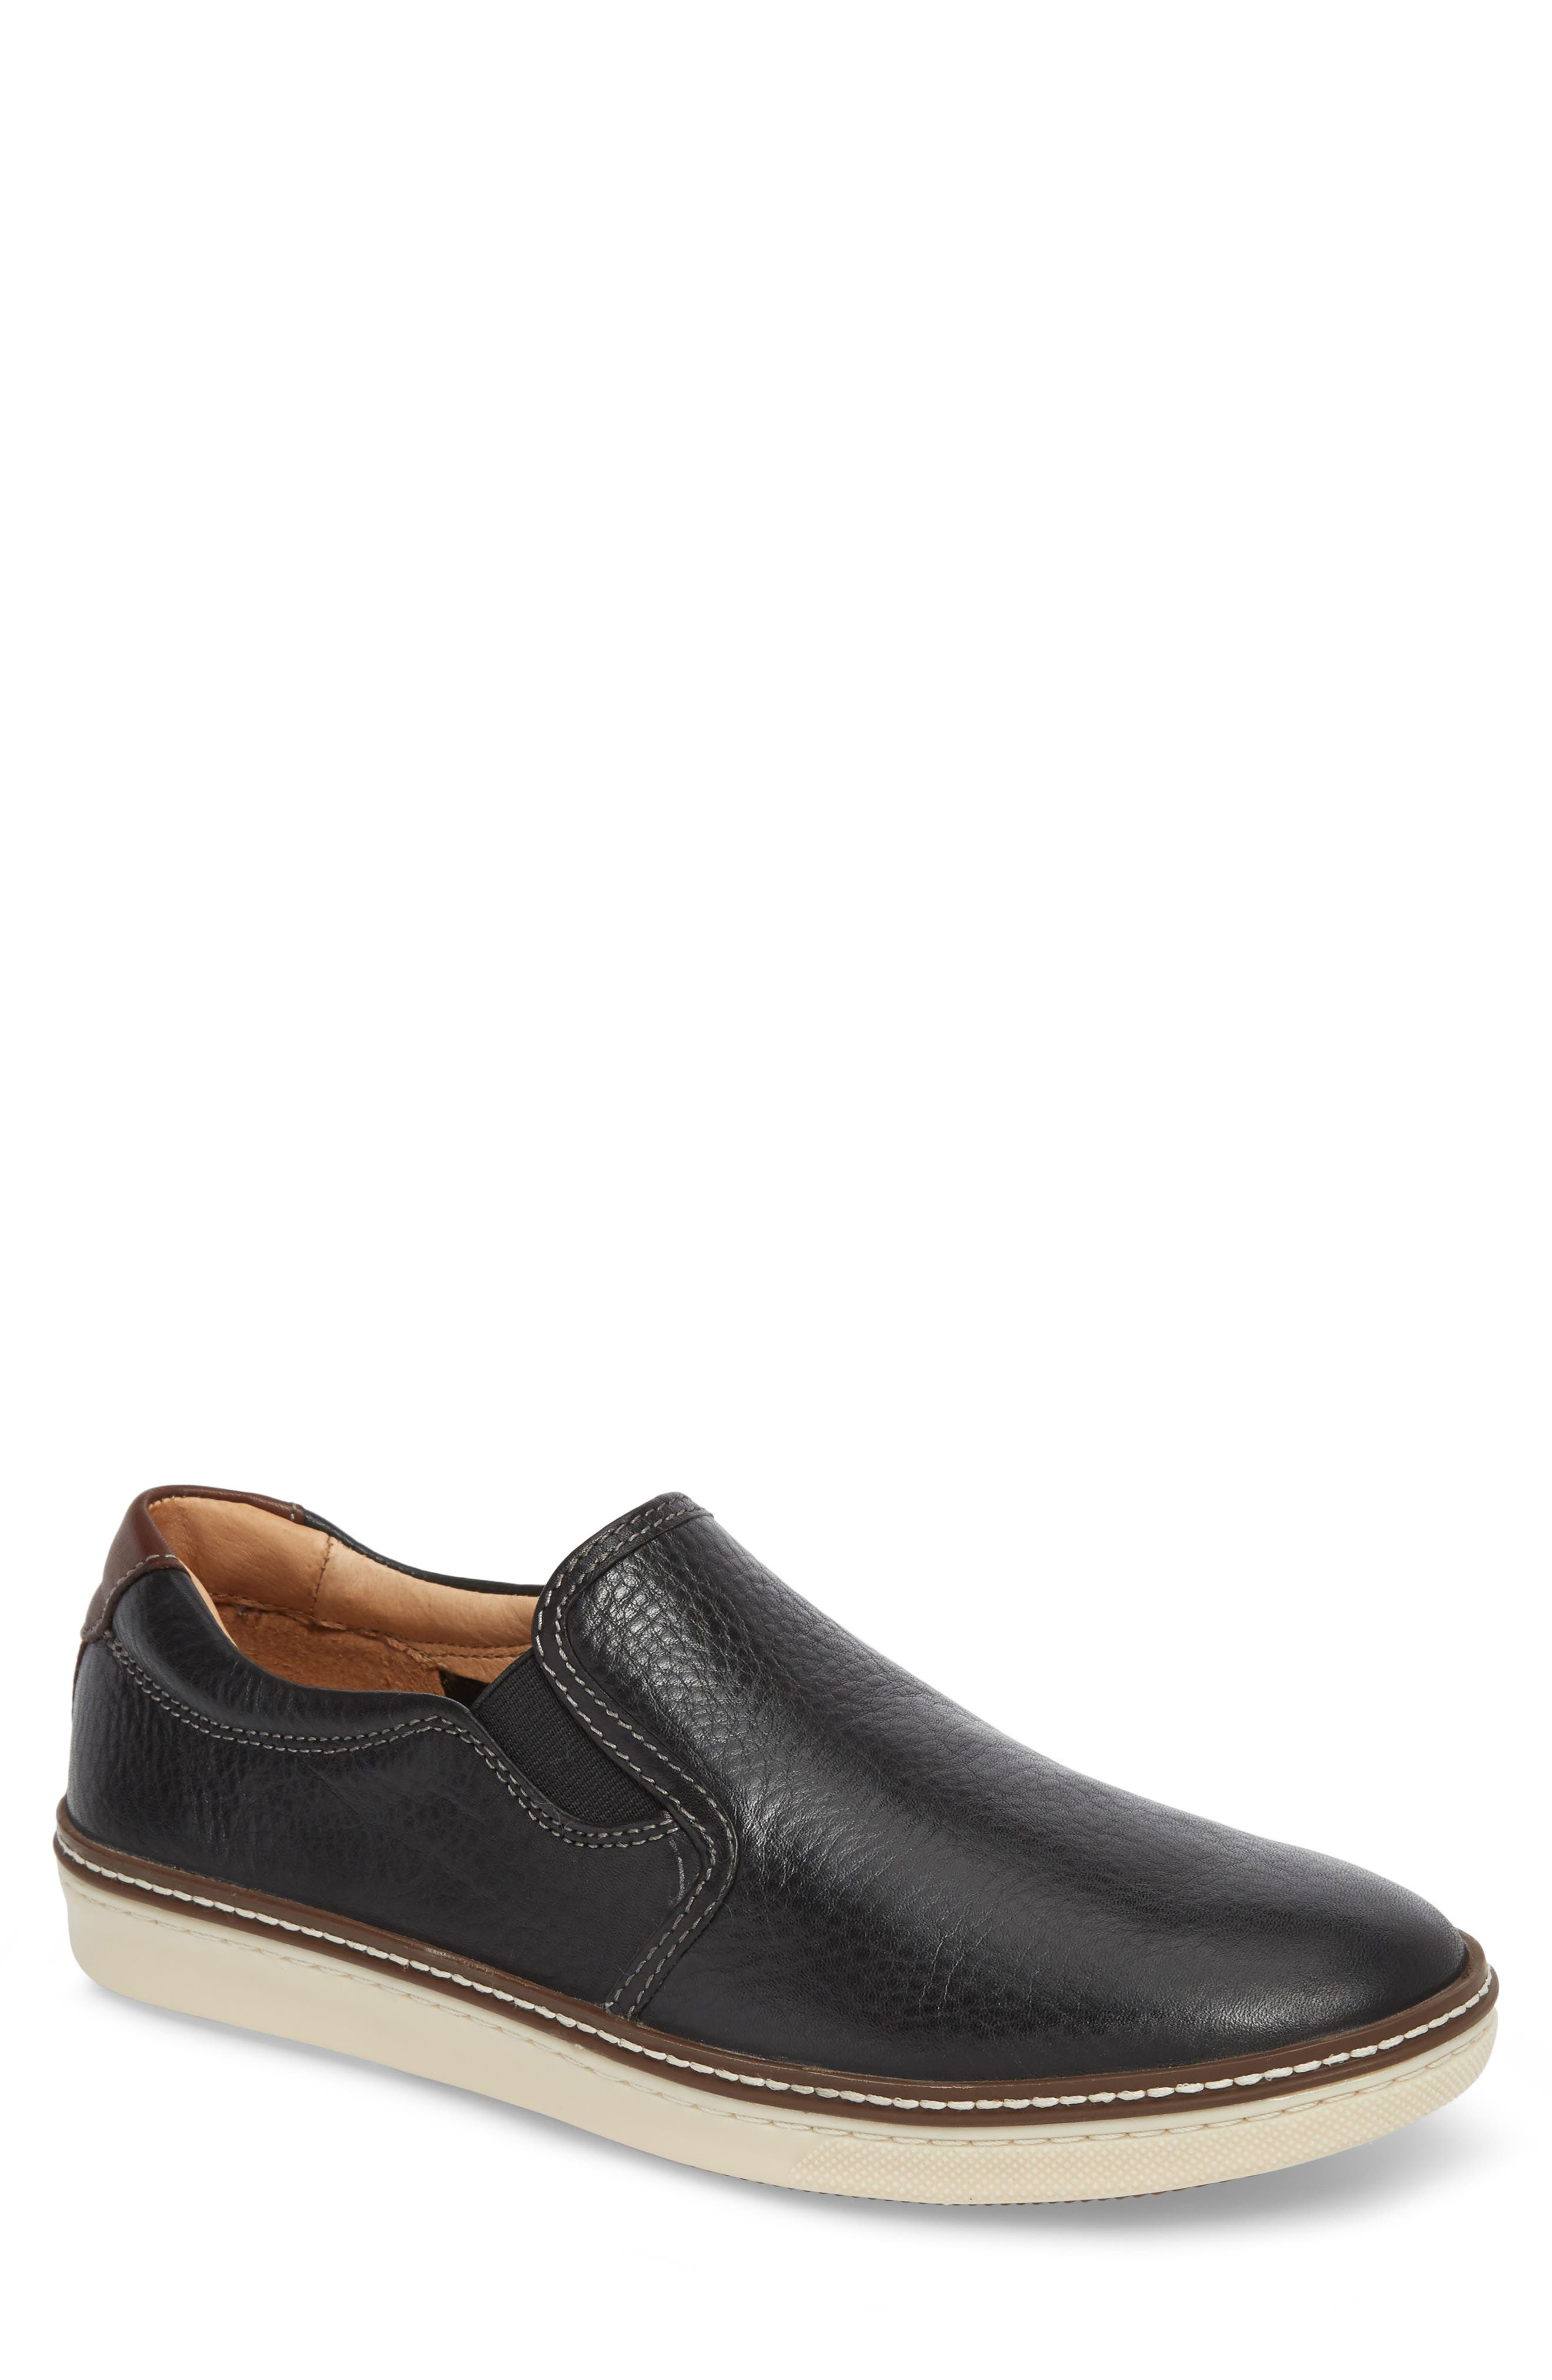 McGuffey Slip-On Sneaker,                             Main thumbnail 1, color,                             BLACK LEATHER